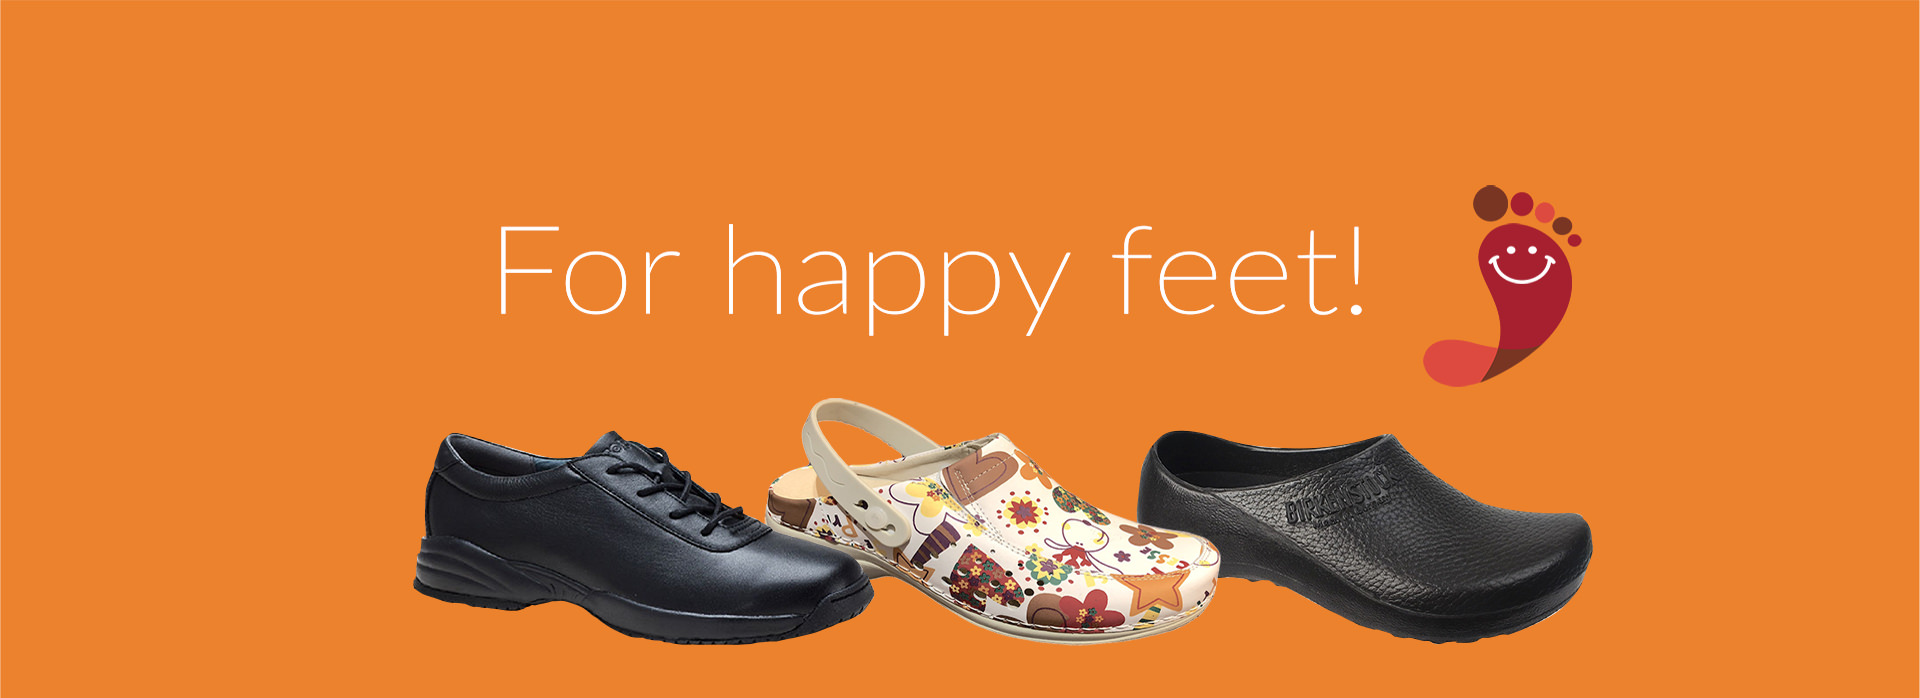 Comfort Shoes Direct For Happy Feet!